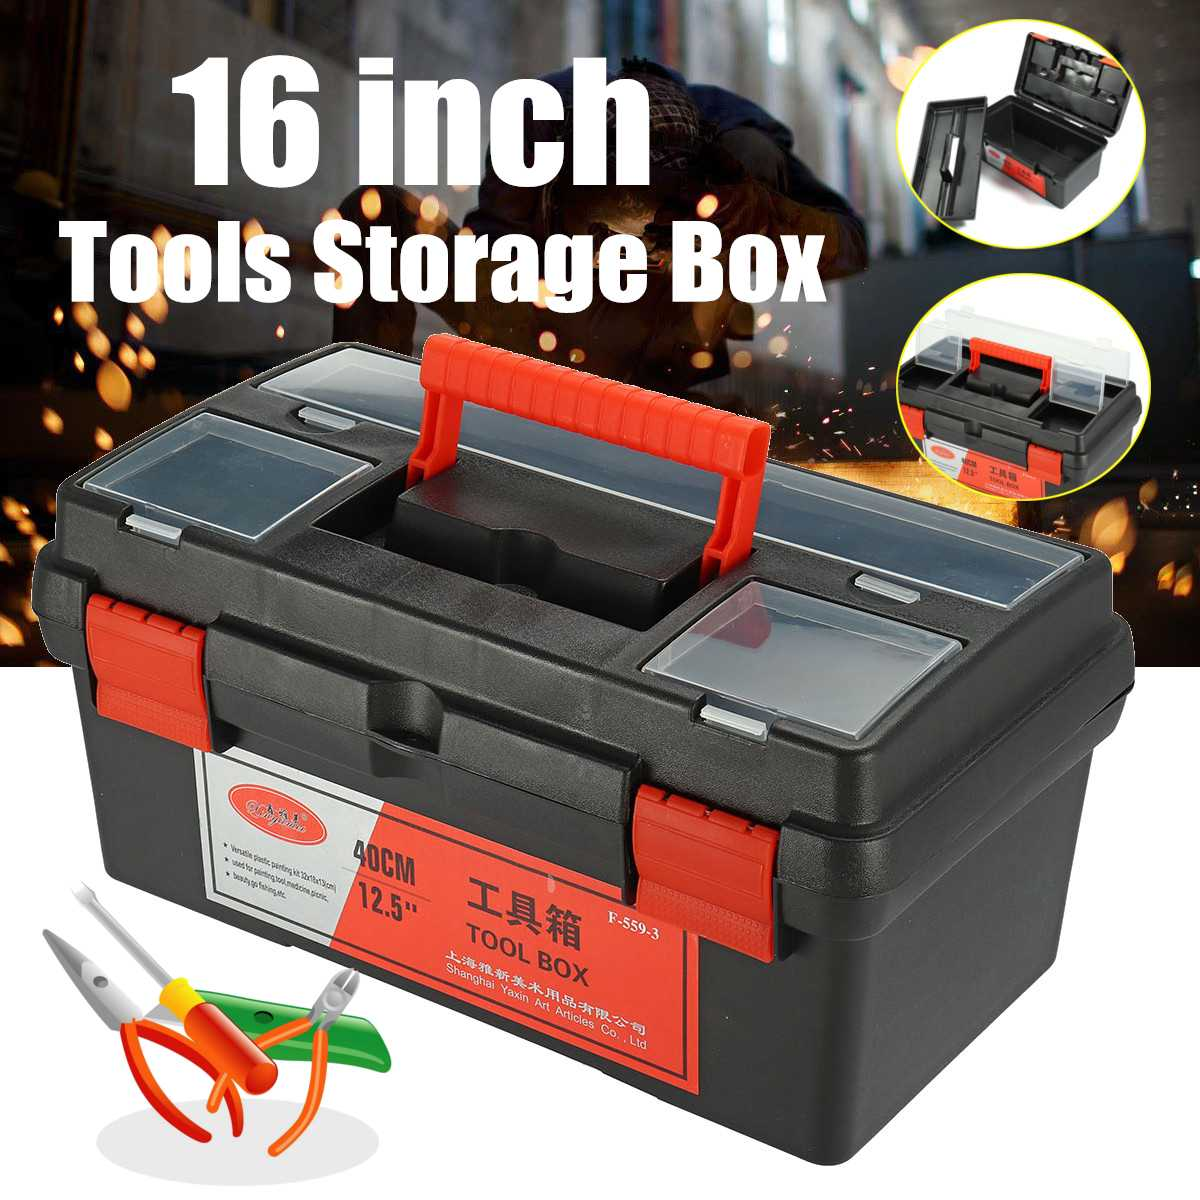 Protable Container 2 Layers Tools Case Detachable 16 Inch Plastic Tool Box Storage With Handle Two Layer Tray Kit Toolbox